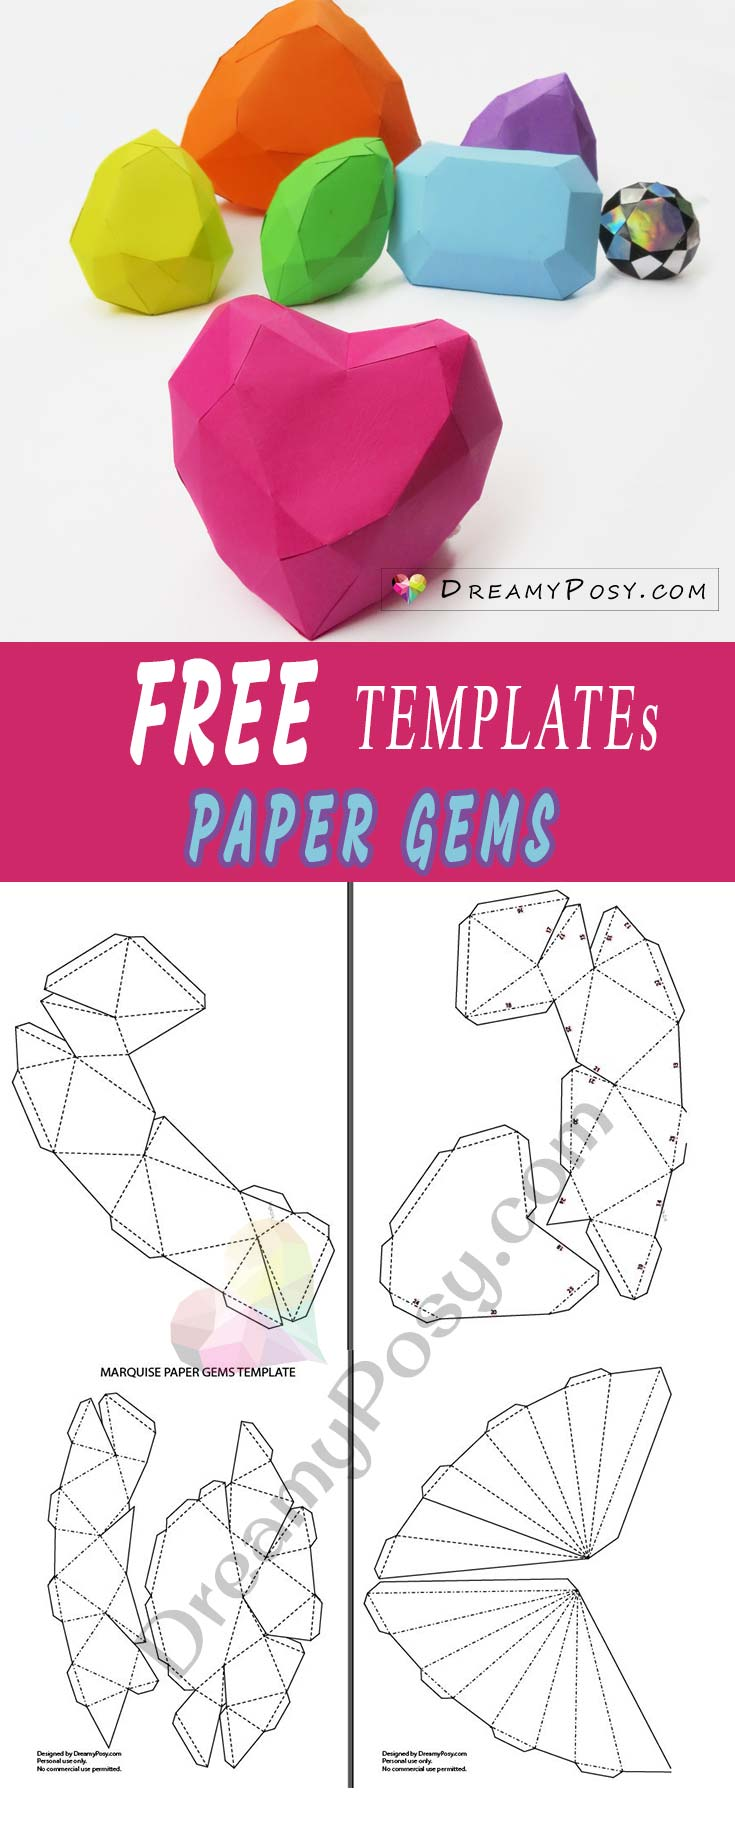 How To Make 3d Paper Gems Collection Free Templates And Tutorial